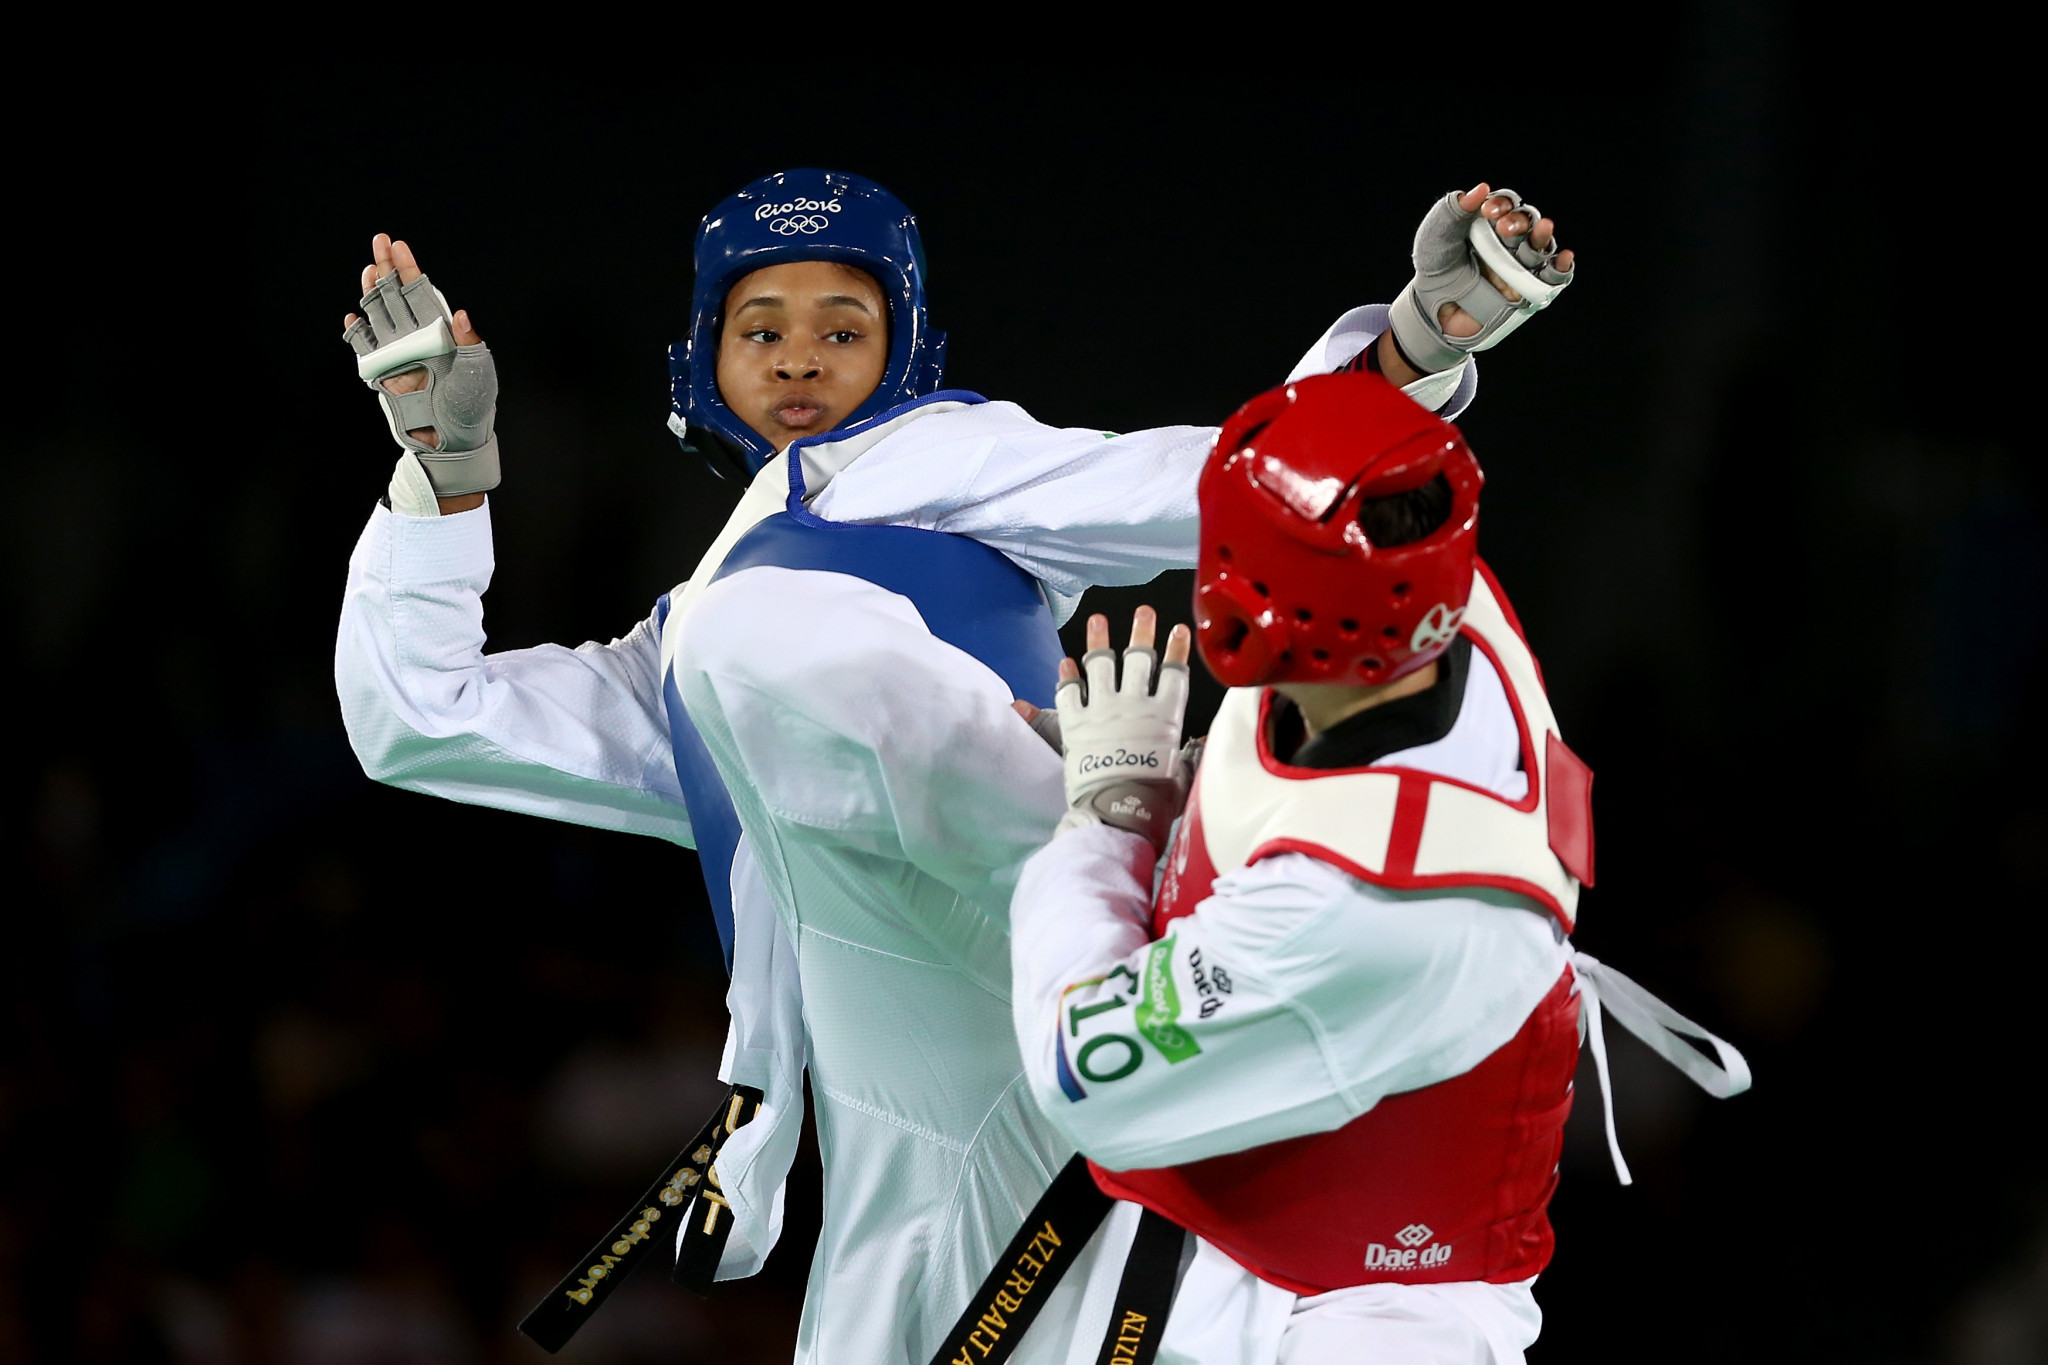 Paige McPherson, in blue, has won three Pan American Games medals, including silver at Lima 2019 ©Getty Images